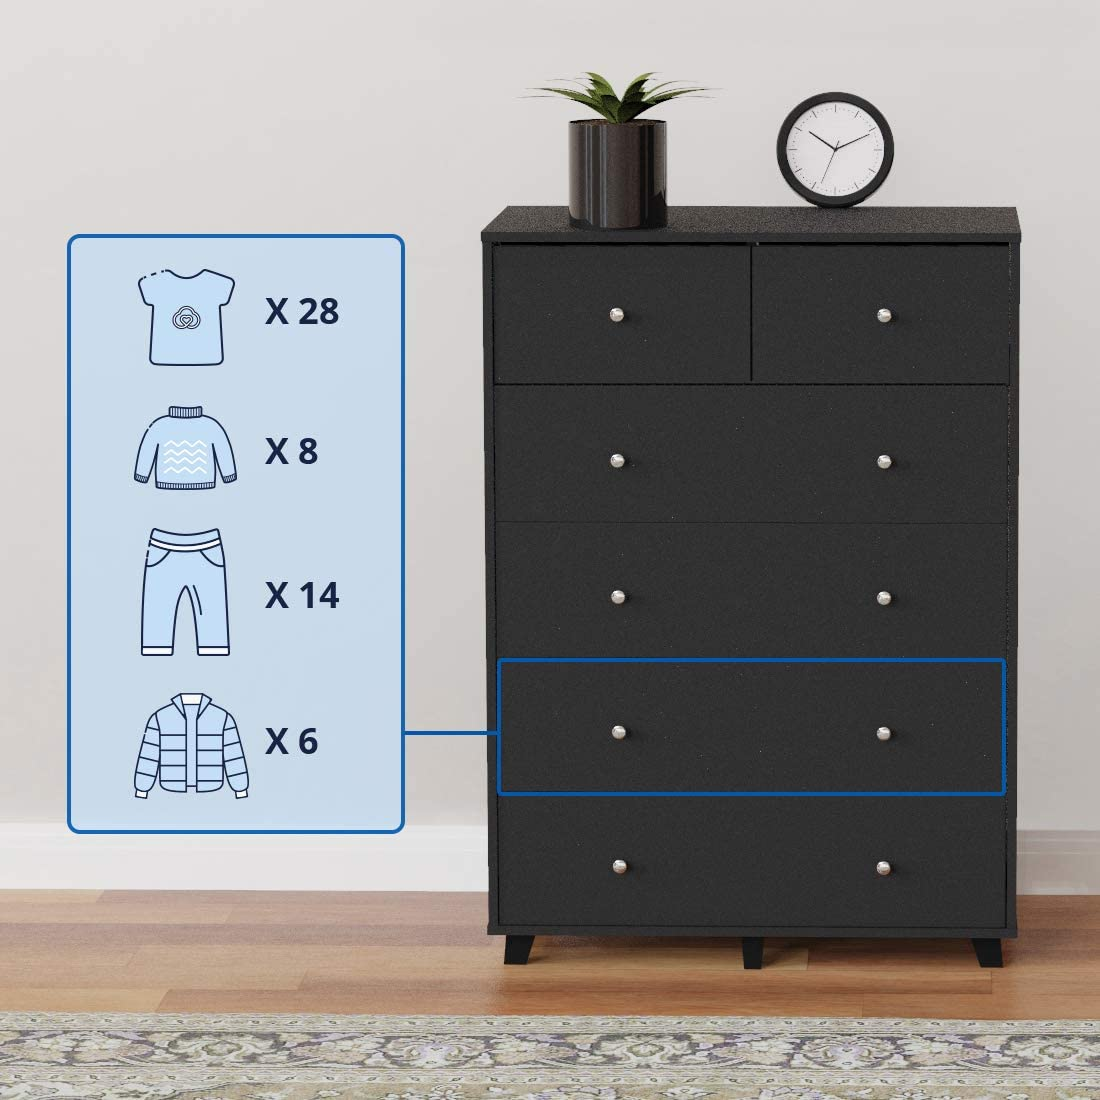 2 Small Drawers and 4 Large Drawers Sufficient for Bedroom Storage Wood Black Dresser Cozy Castle 6-Drawer Dresser Vertical Dresser Chest of Drawers for Bedroom